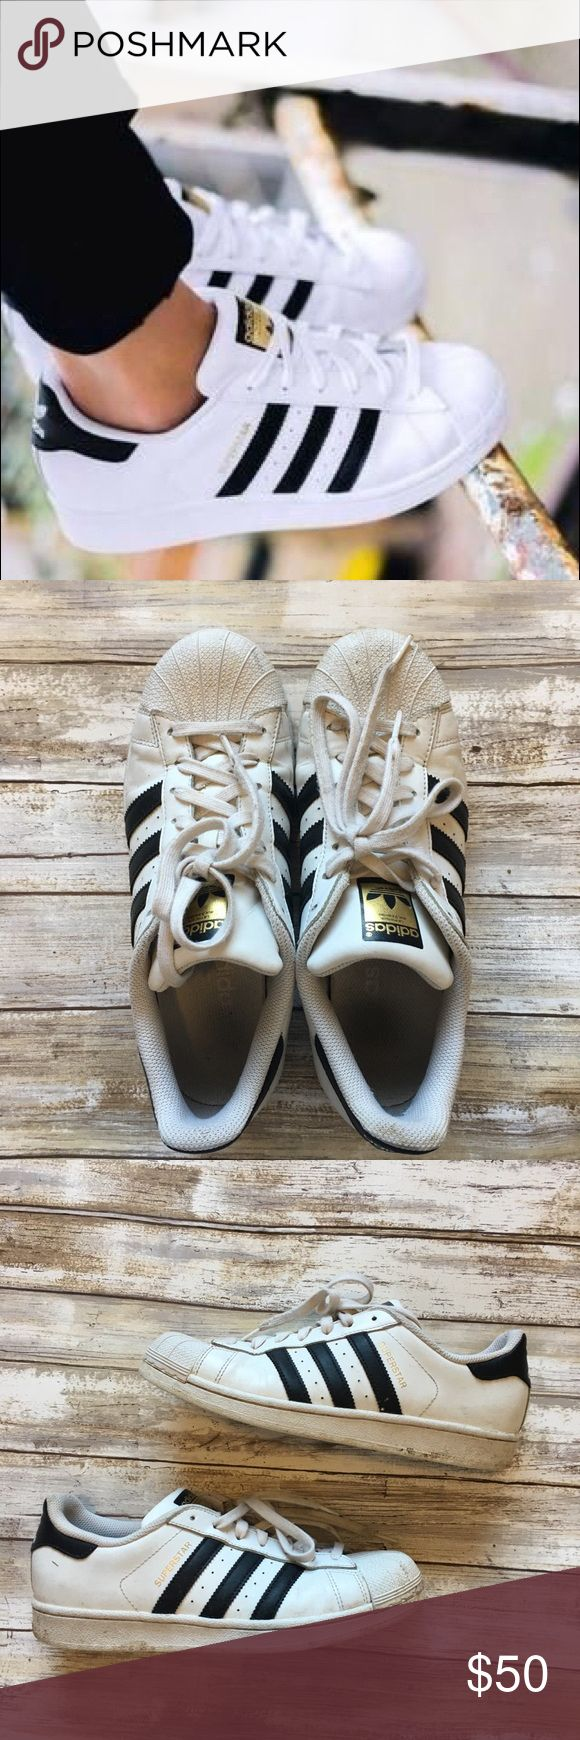 Adidas Superstar Shoes Classic sneakers from Adidas! Gently used condition- some normal wear and tear. Please refer to pics for condition. Fits a size 8 1/2. adidas Shoes Athletic Shoes